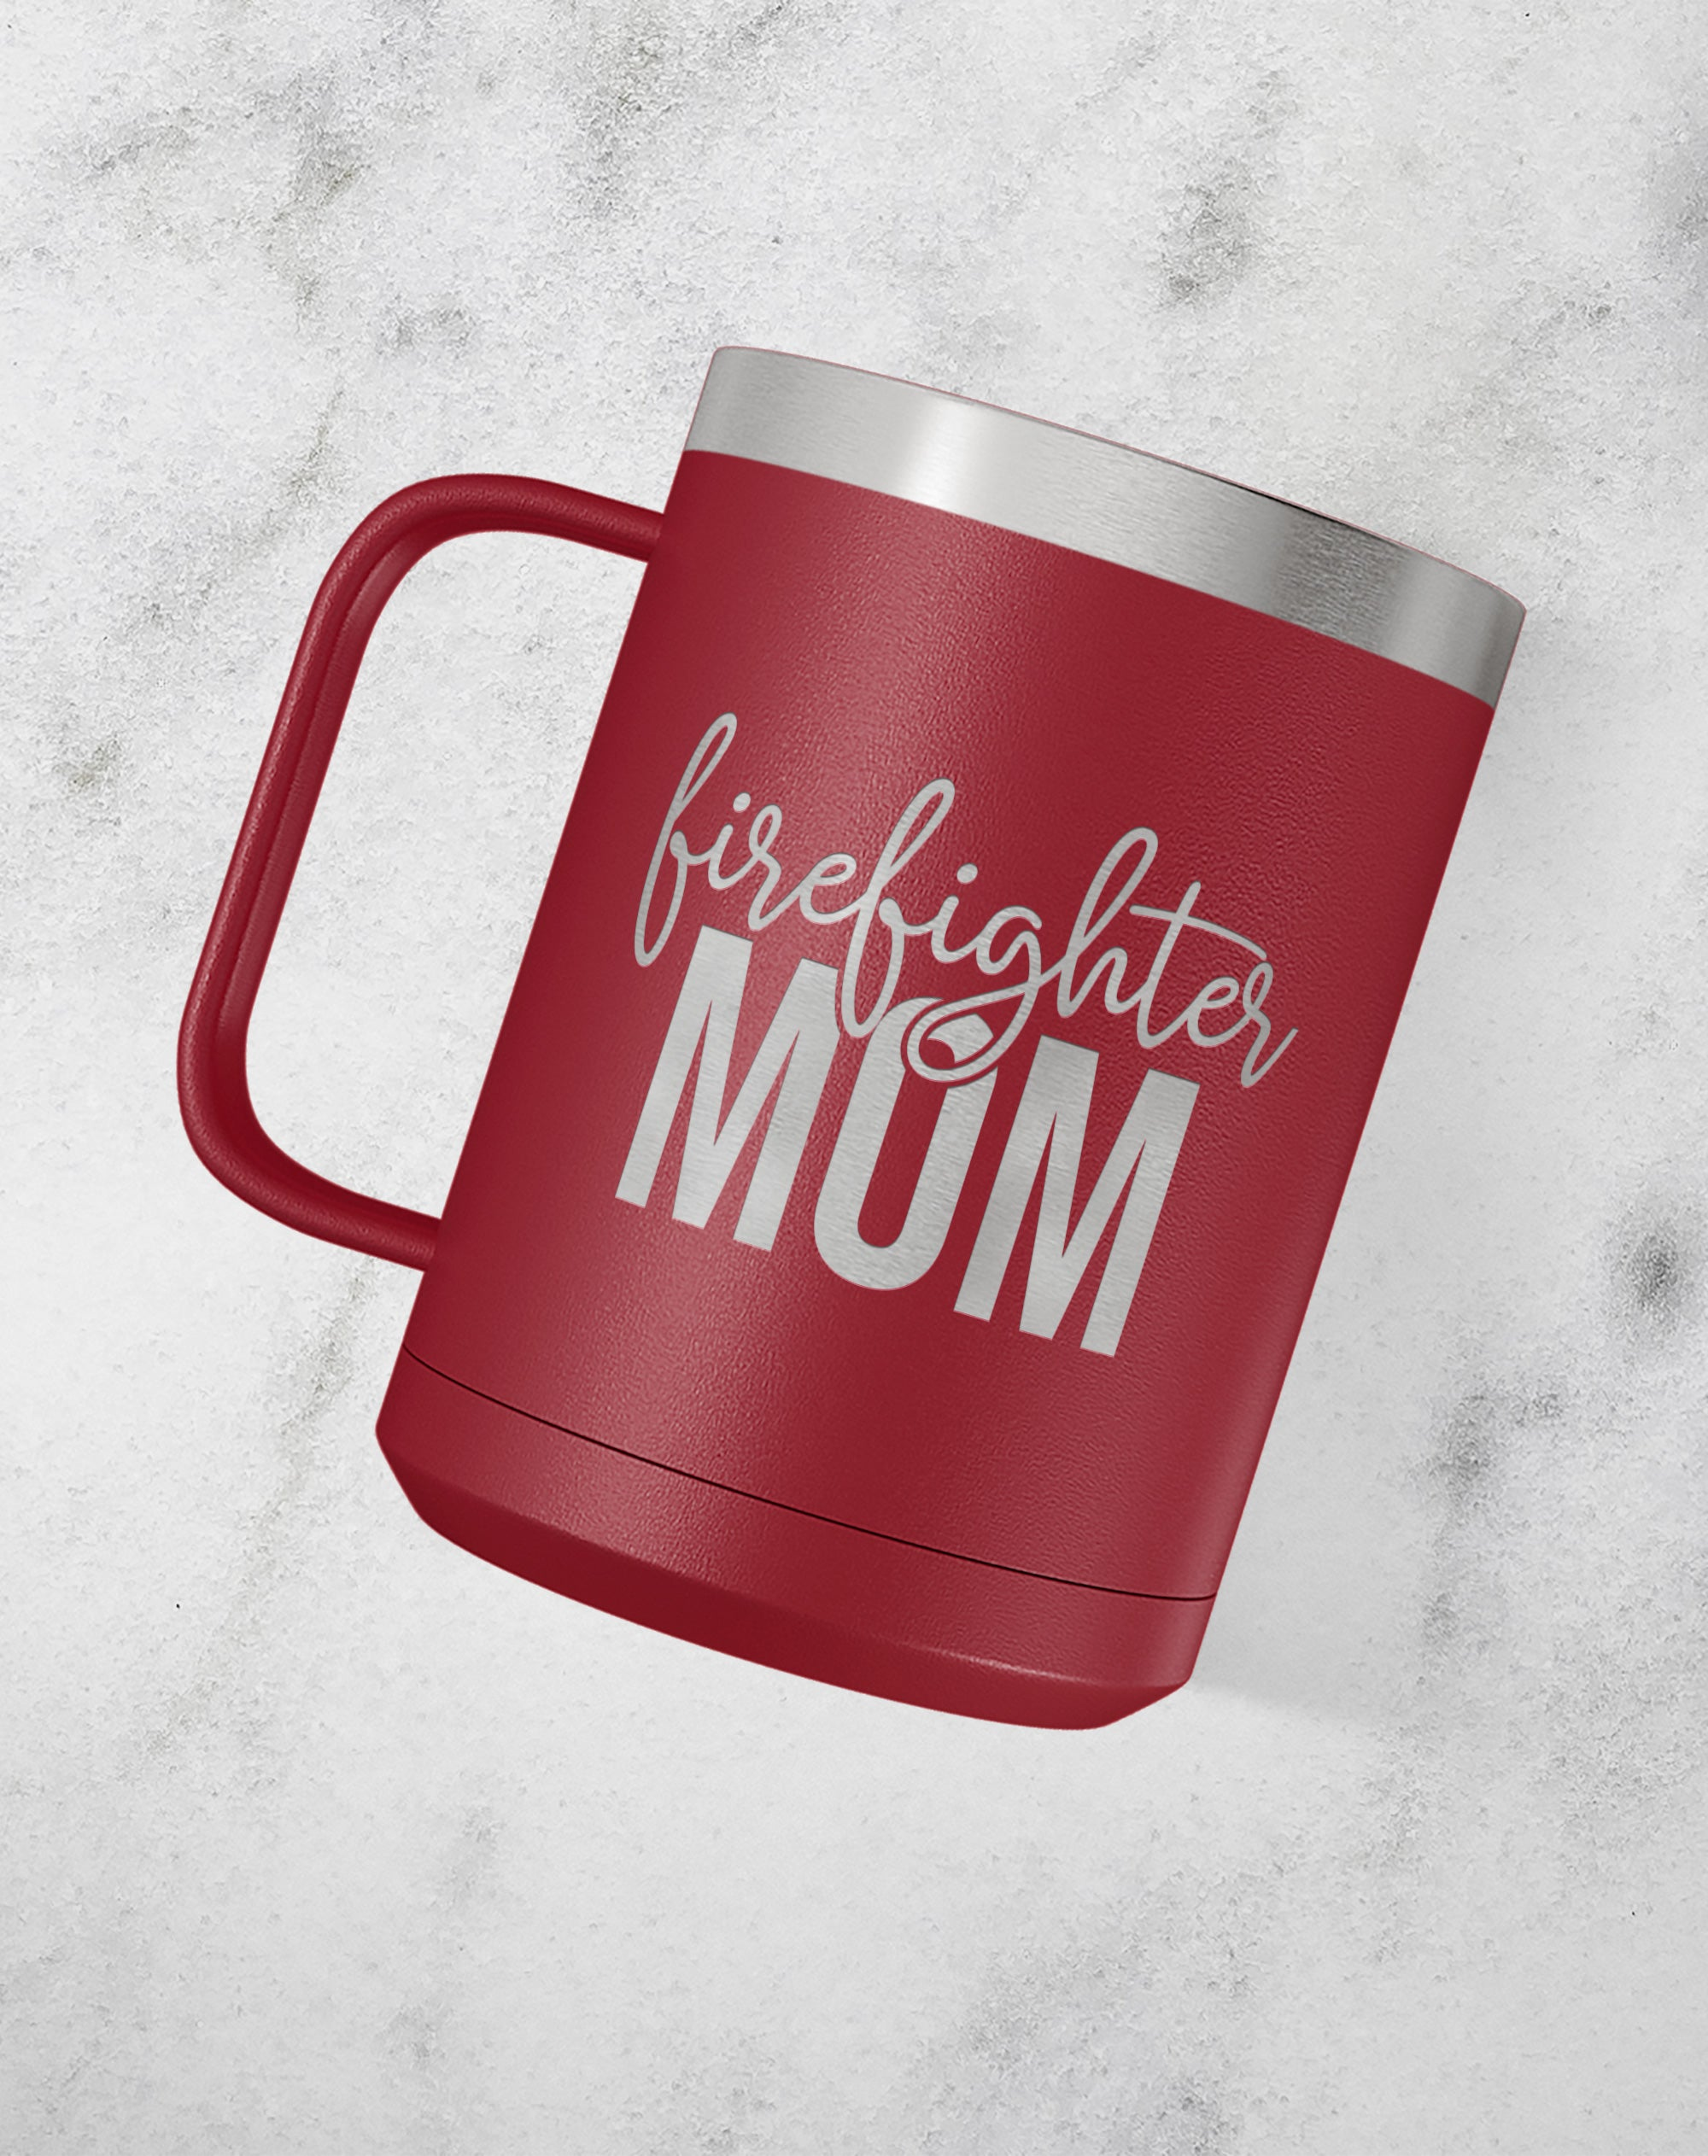 Firefighter Mom Stainless Steel Coffee Mug-Coffee Mugs-Maddie & Co.